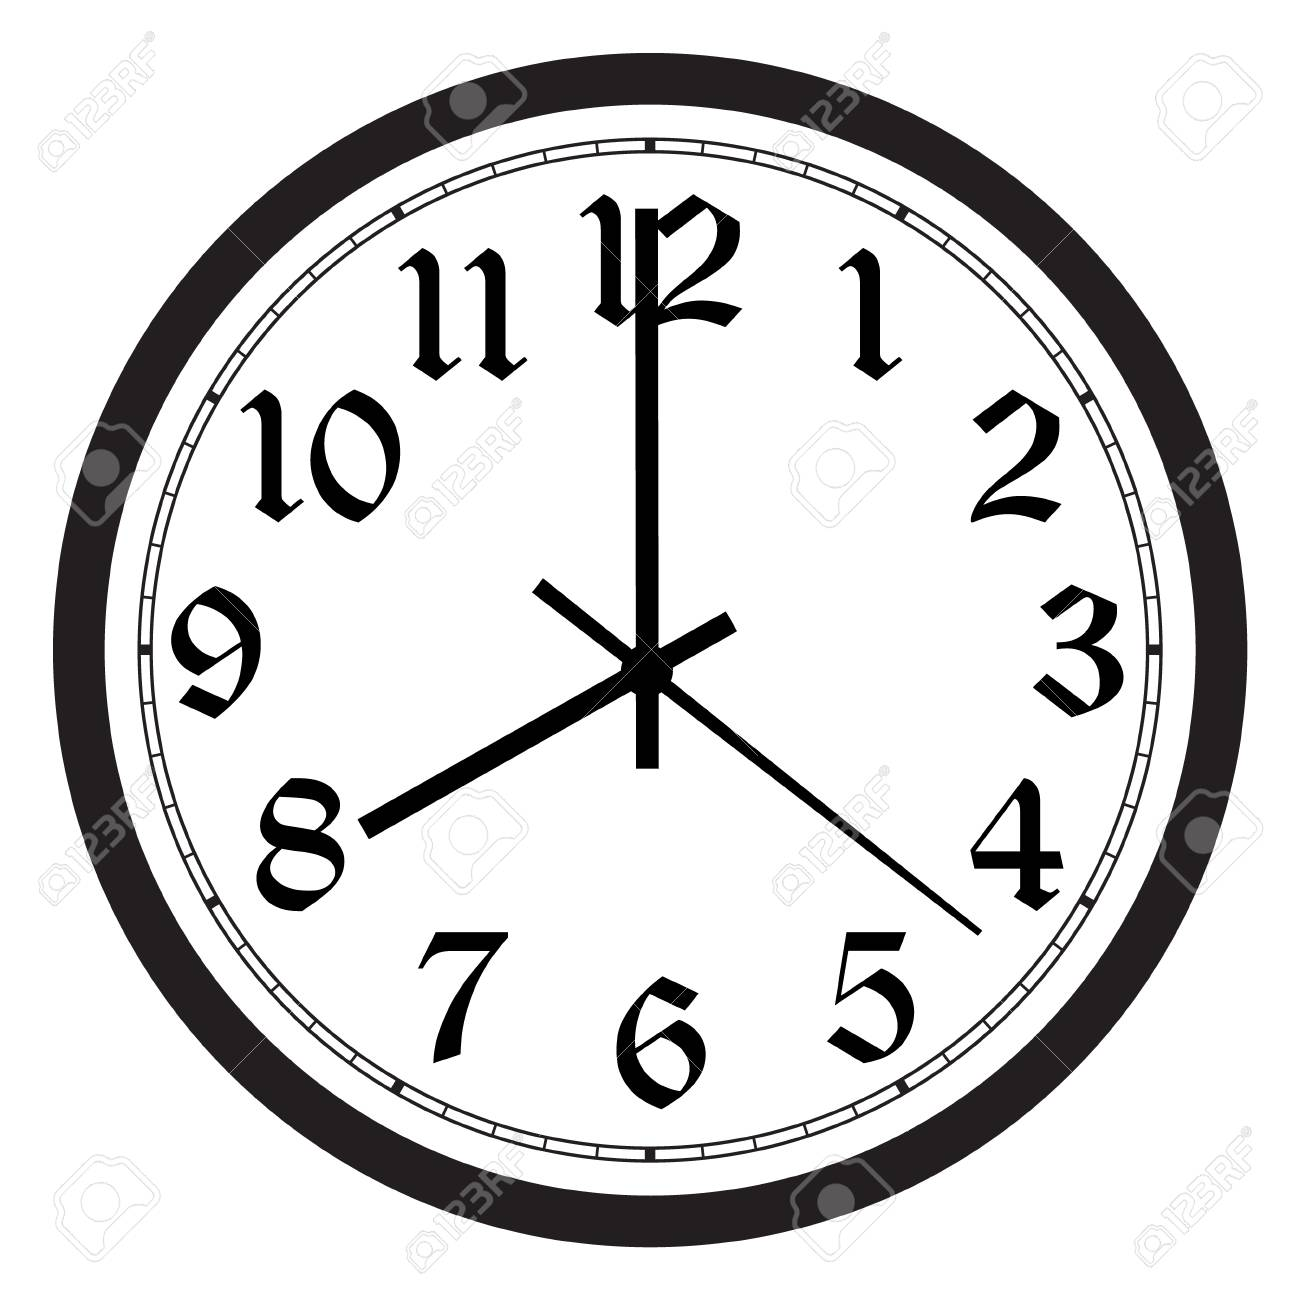 Vector simple classic black and white round wall clock isolated...